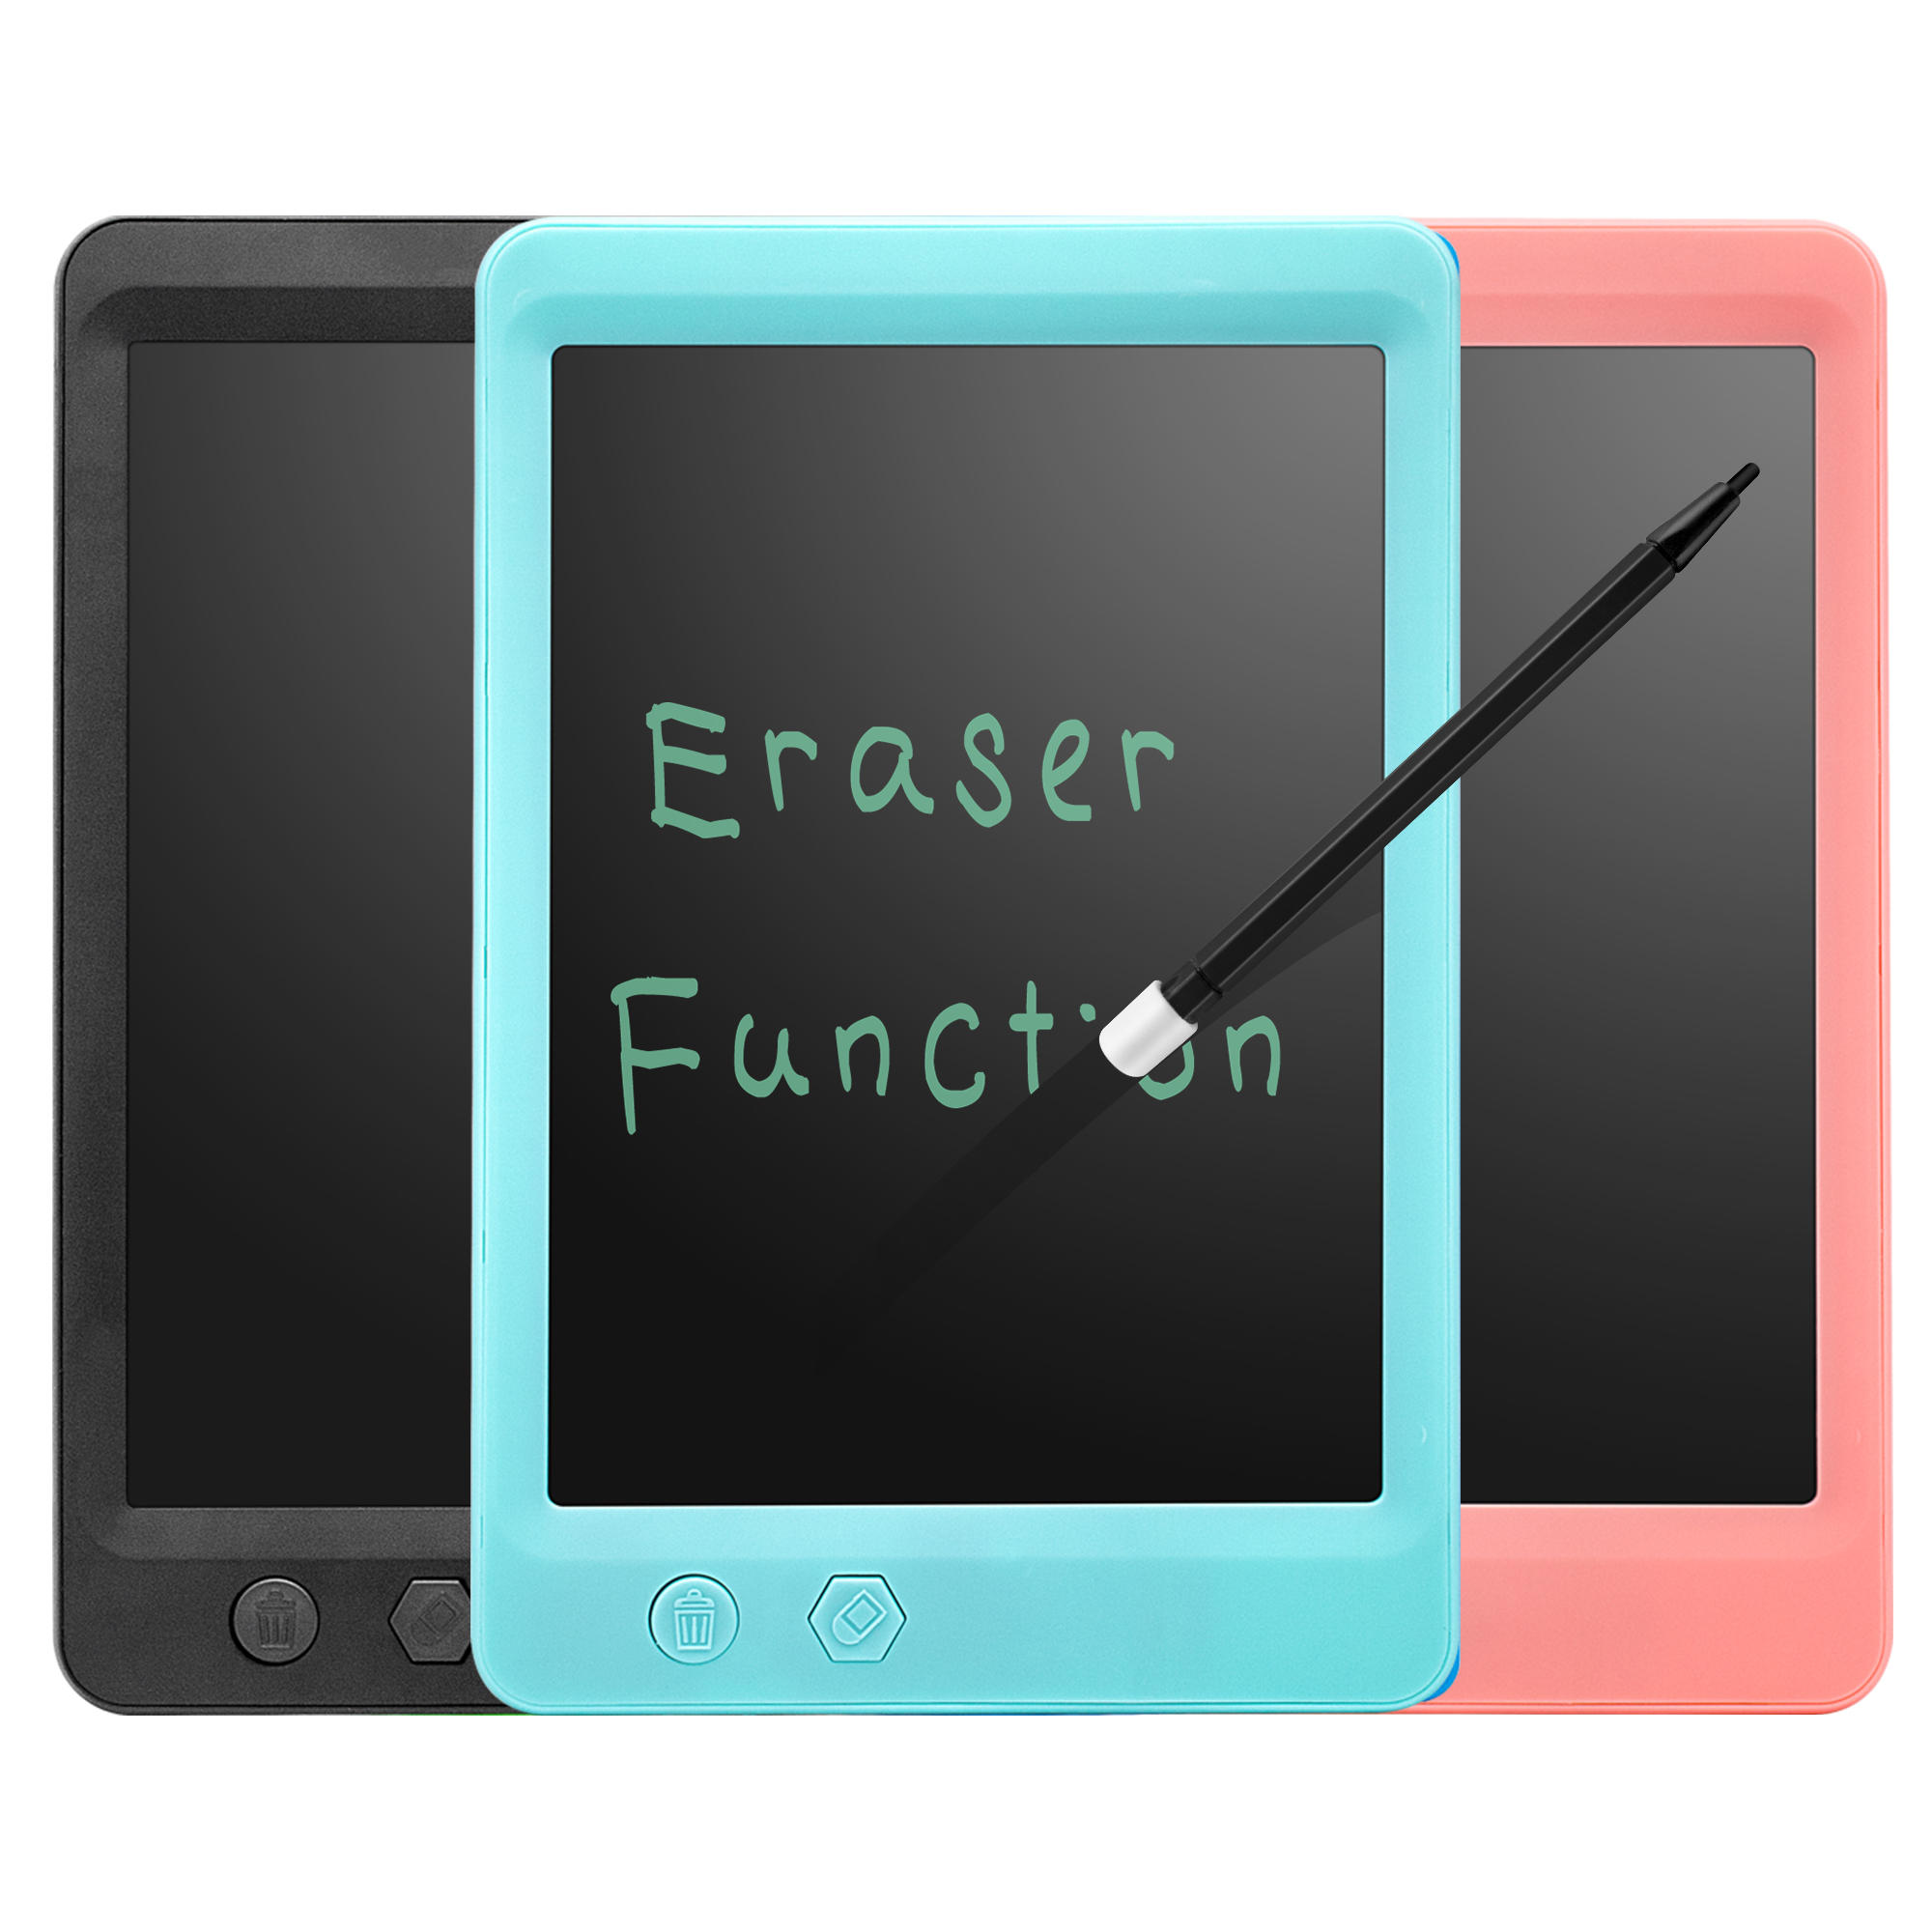 NewLight NLT-L085CE 8.5 inch Smart LCD Writing Tablet Electronic Drawing Writing Board Portable Handwriting Notepad Gifts for Kids Childrens COD